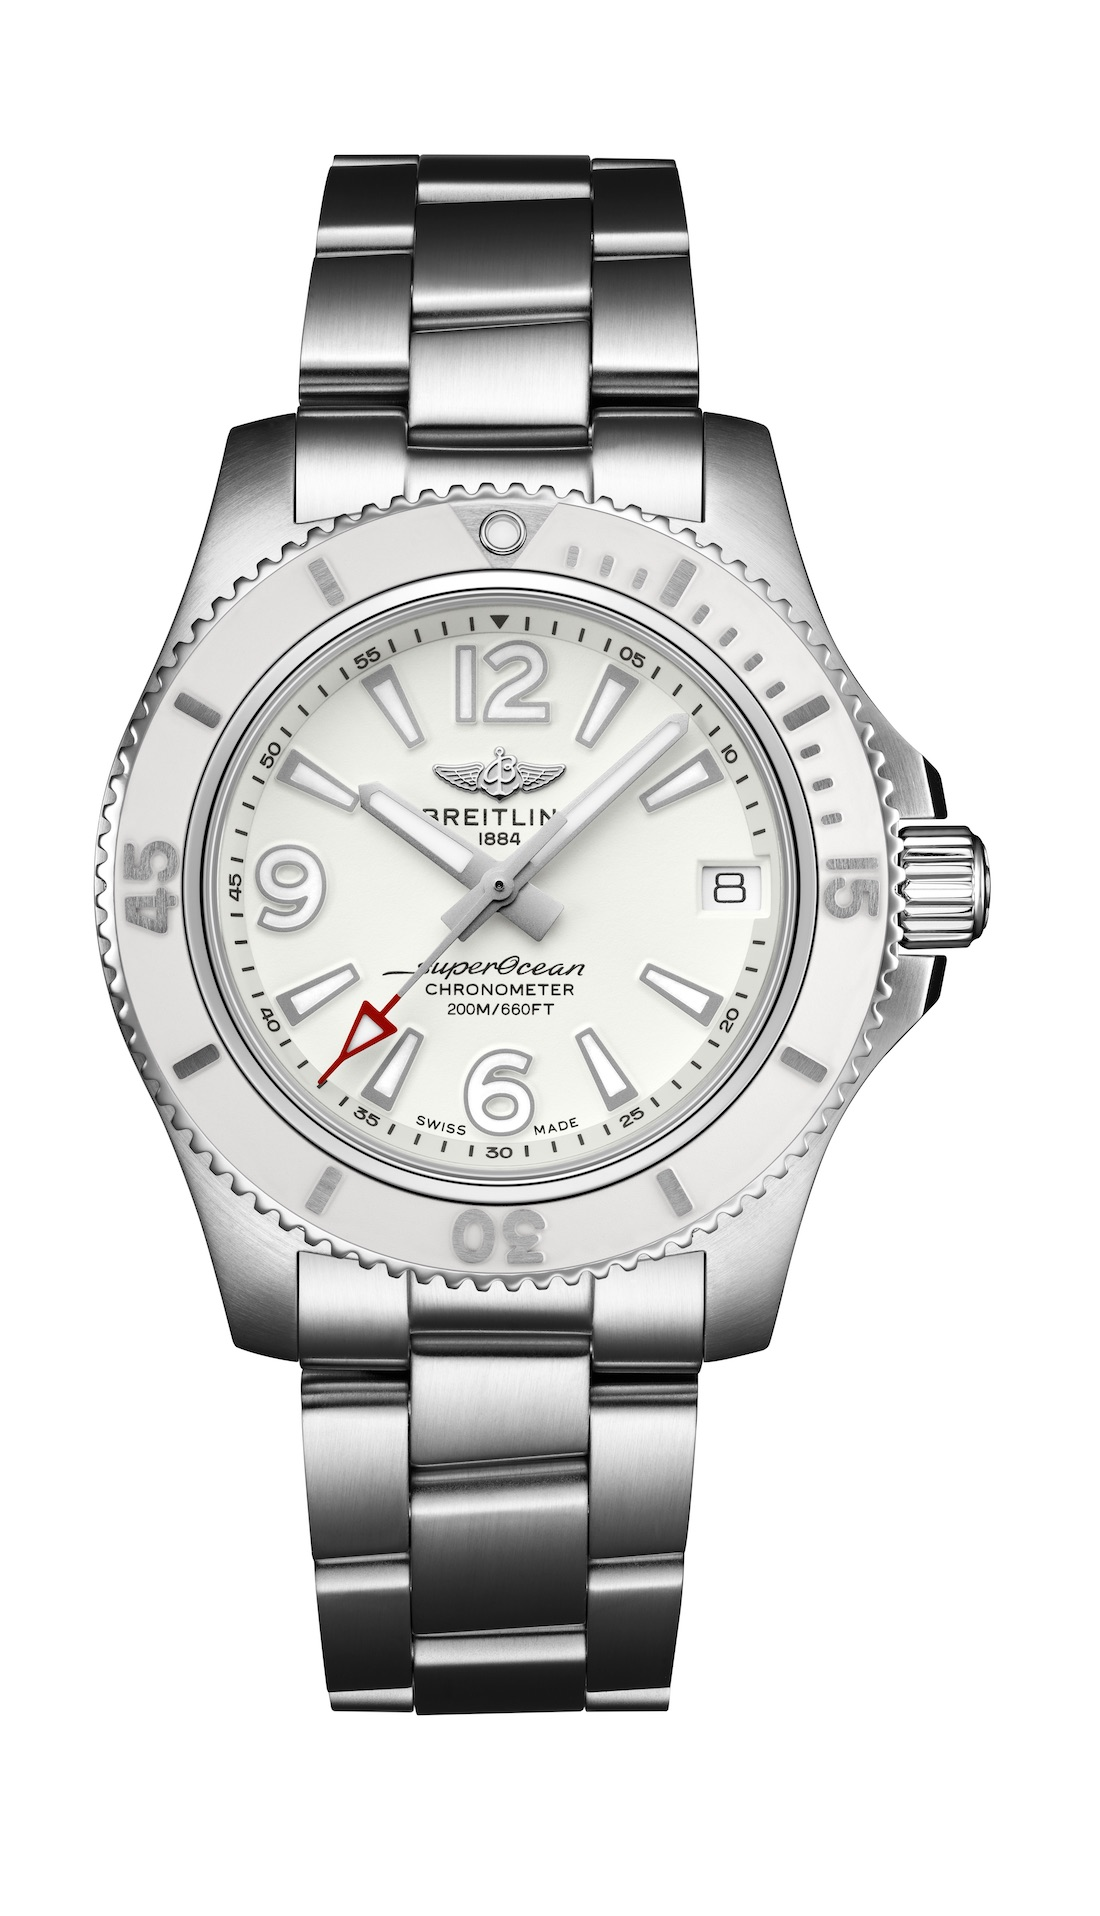 20_Superocean 36 with white dial and stainless-steel bracelet_22850_19-03-19.jpeg